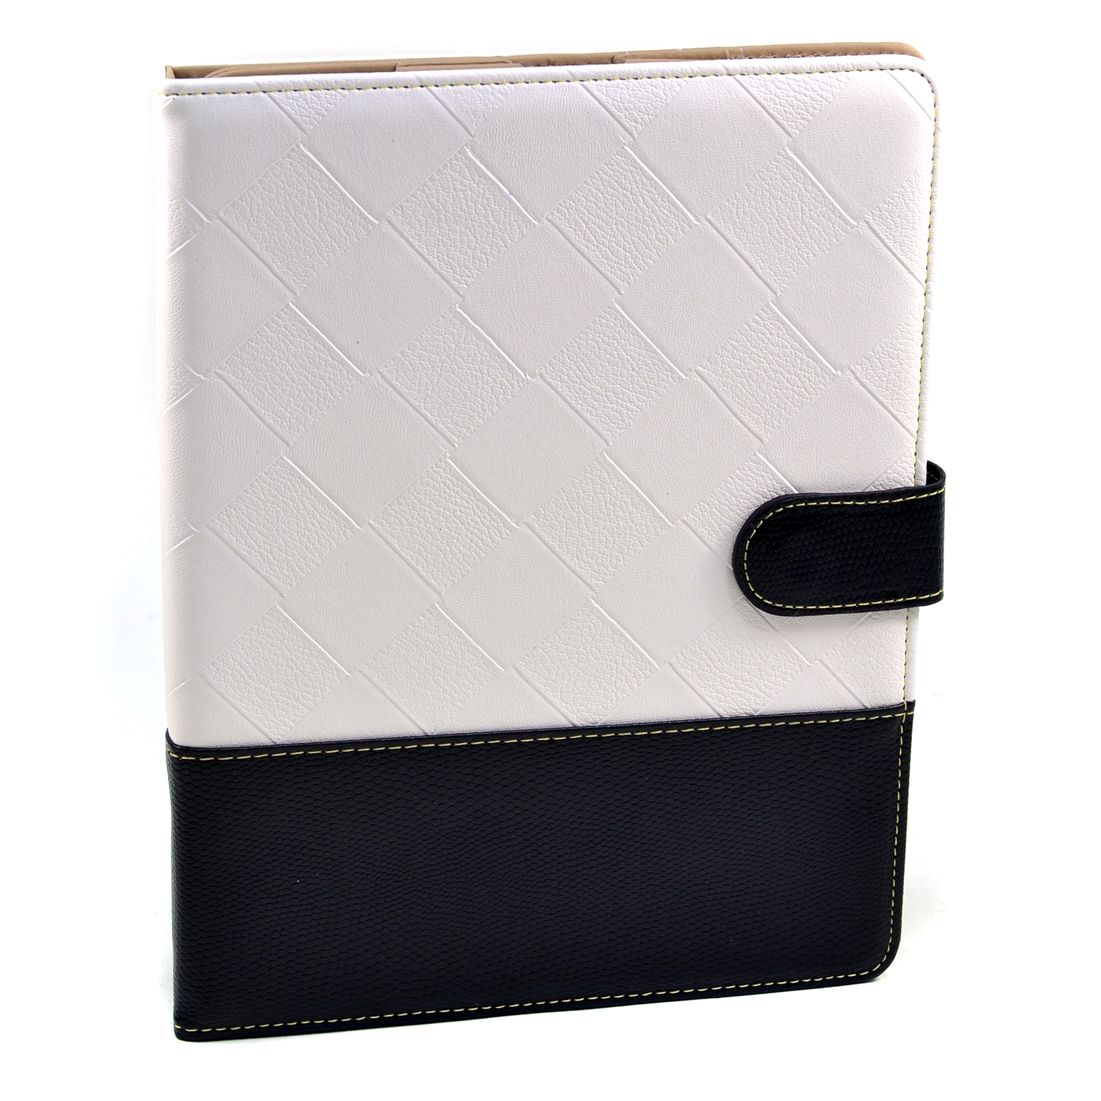 Dasein® Faux Weave Leather and Snakeskin Trim iPad Case New Smart Stand Cover for iPad 2 3 4